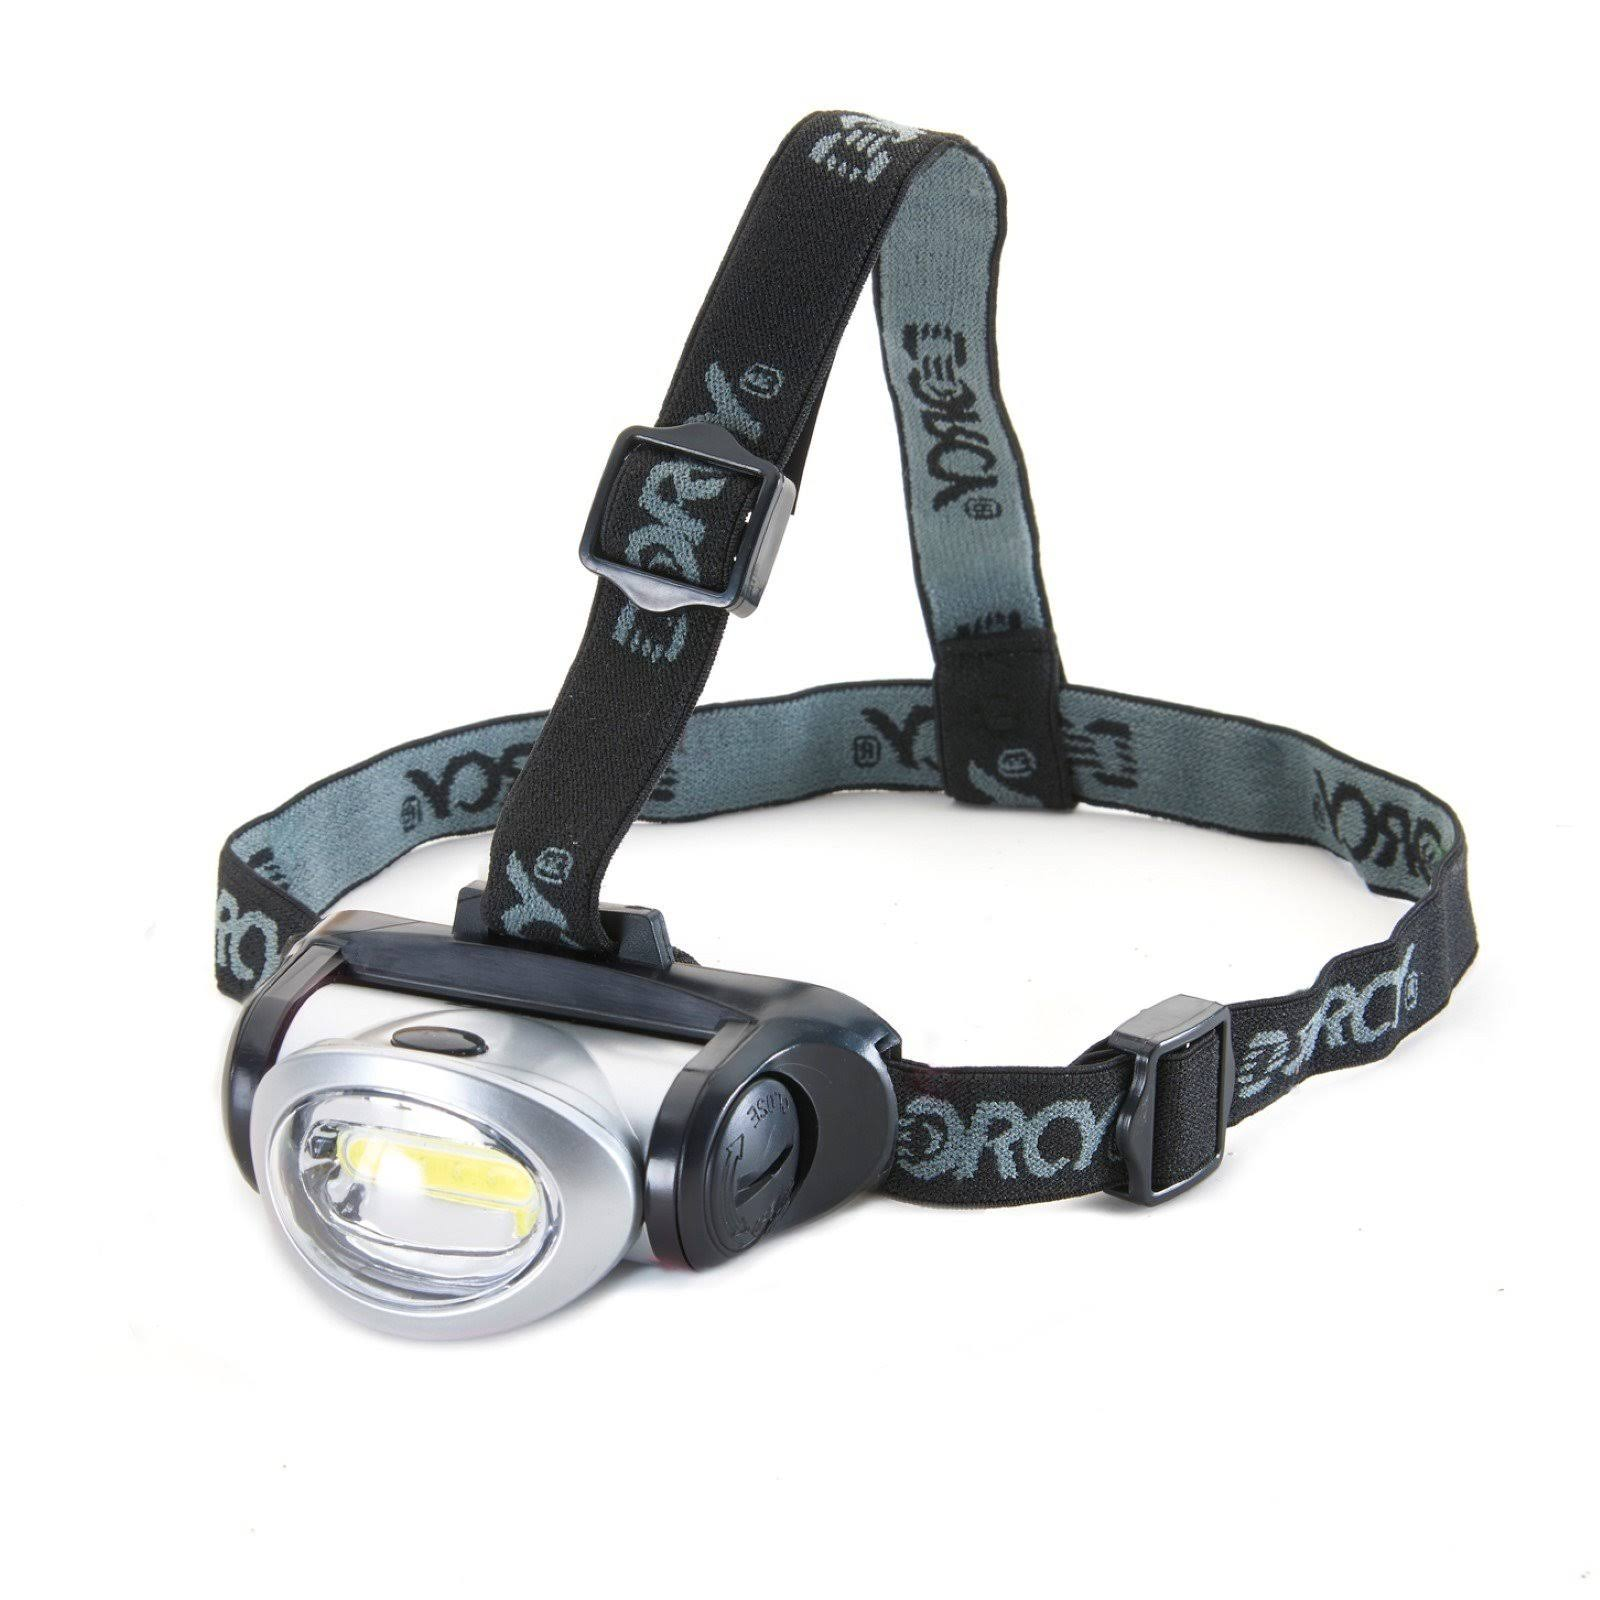 Dorcy LED Headlight - 17 Lumens, Black